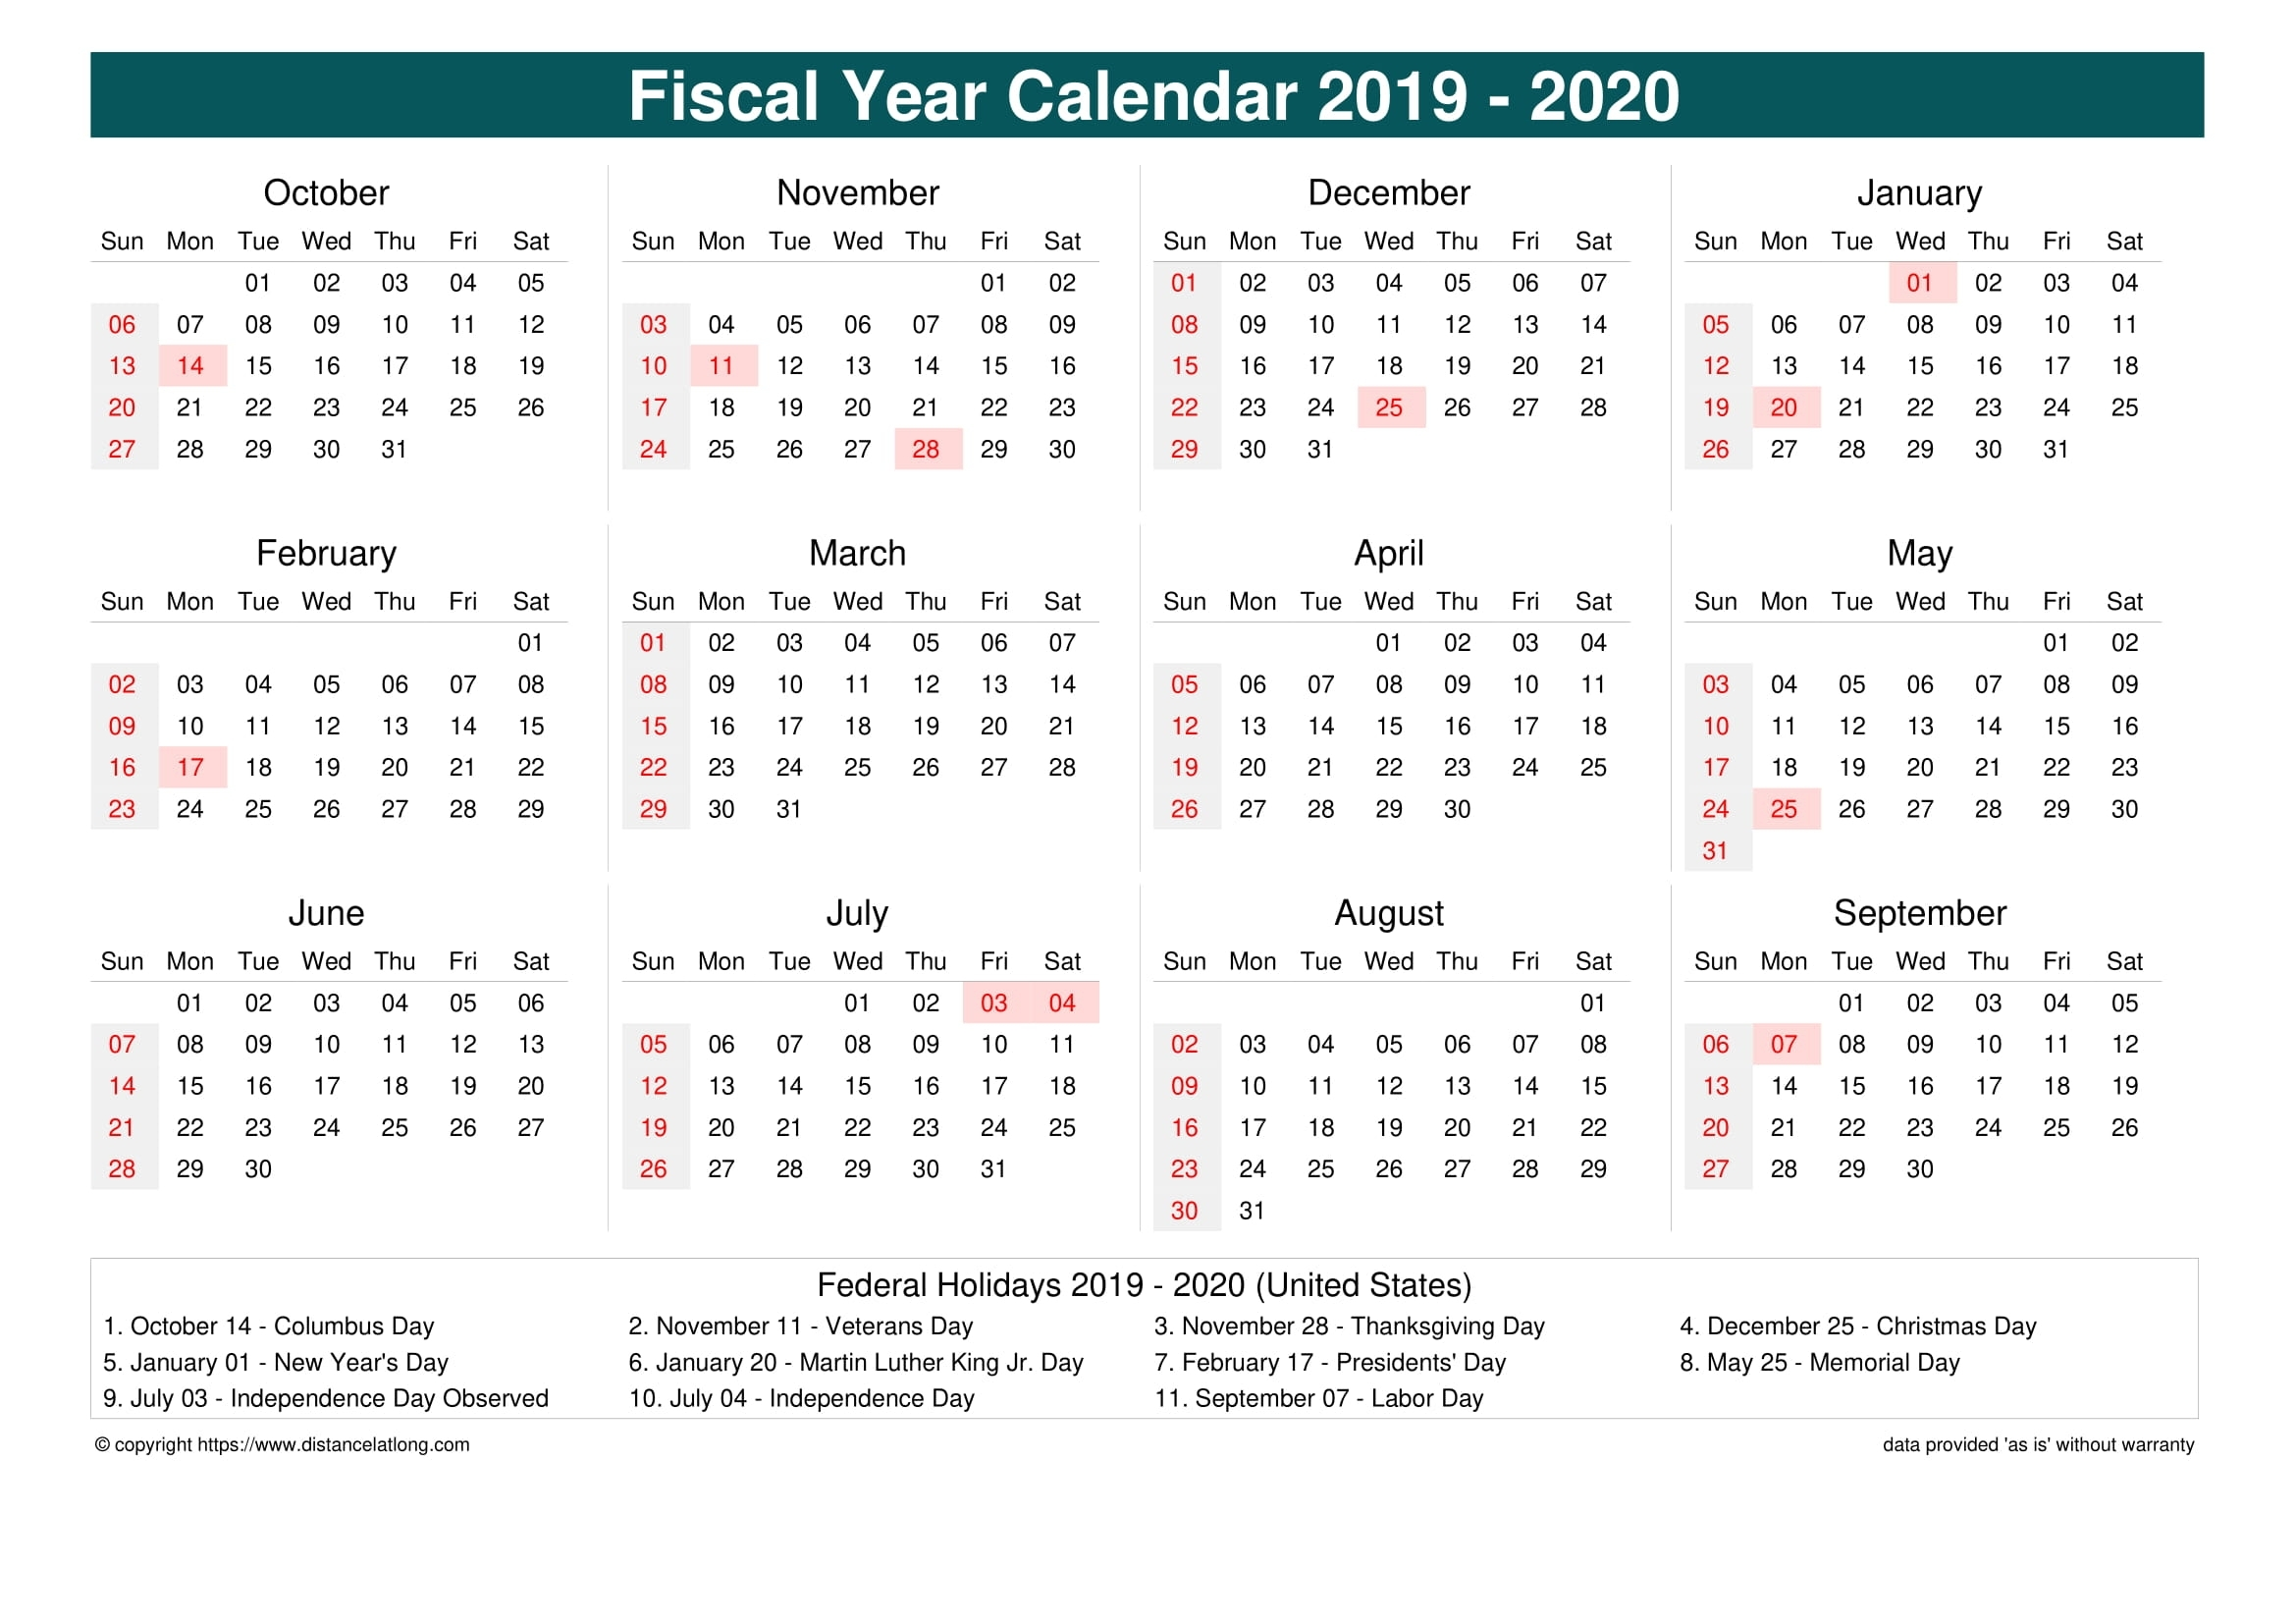 Fiscal Year 2019-2020 Calendar Templates, Free Printable with Week Numbers Fiscal Year 2019-2020